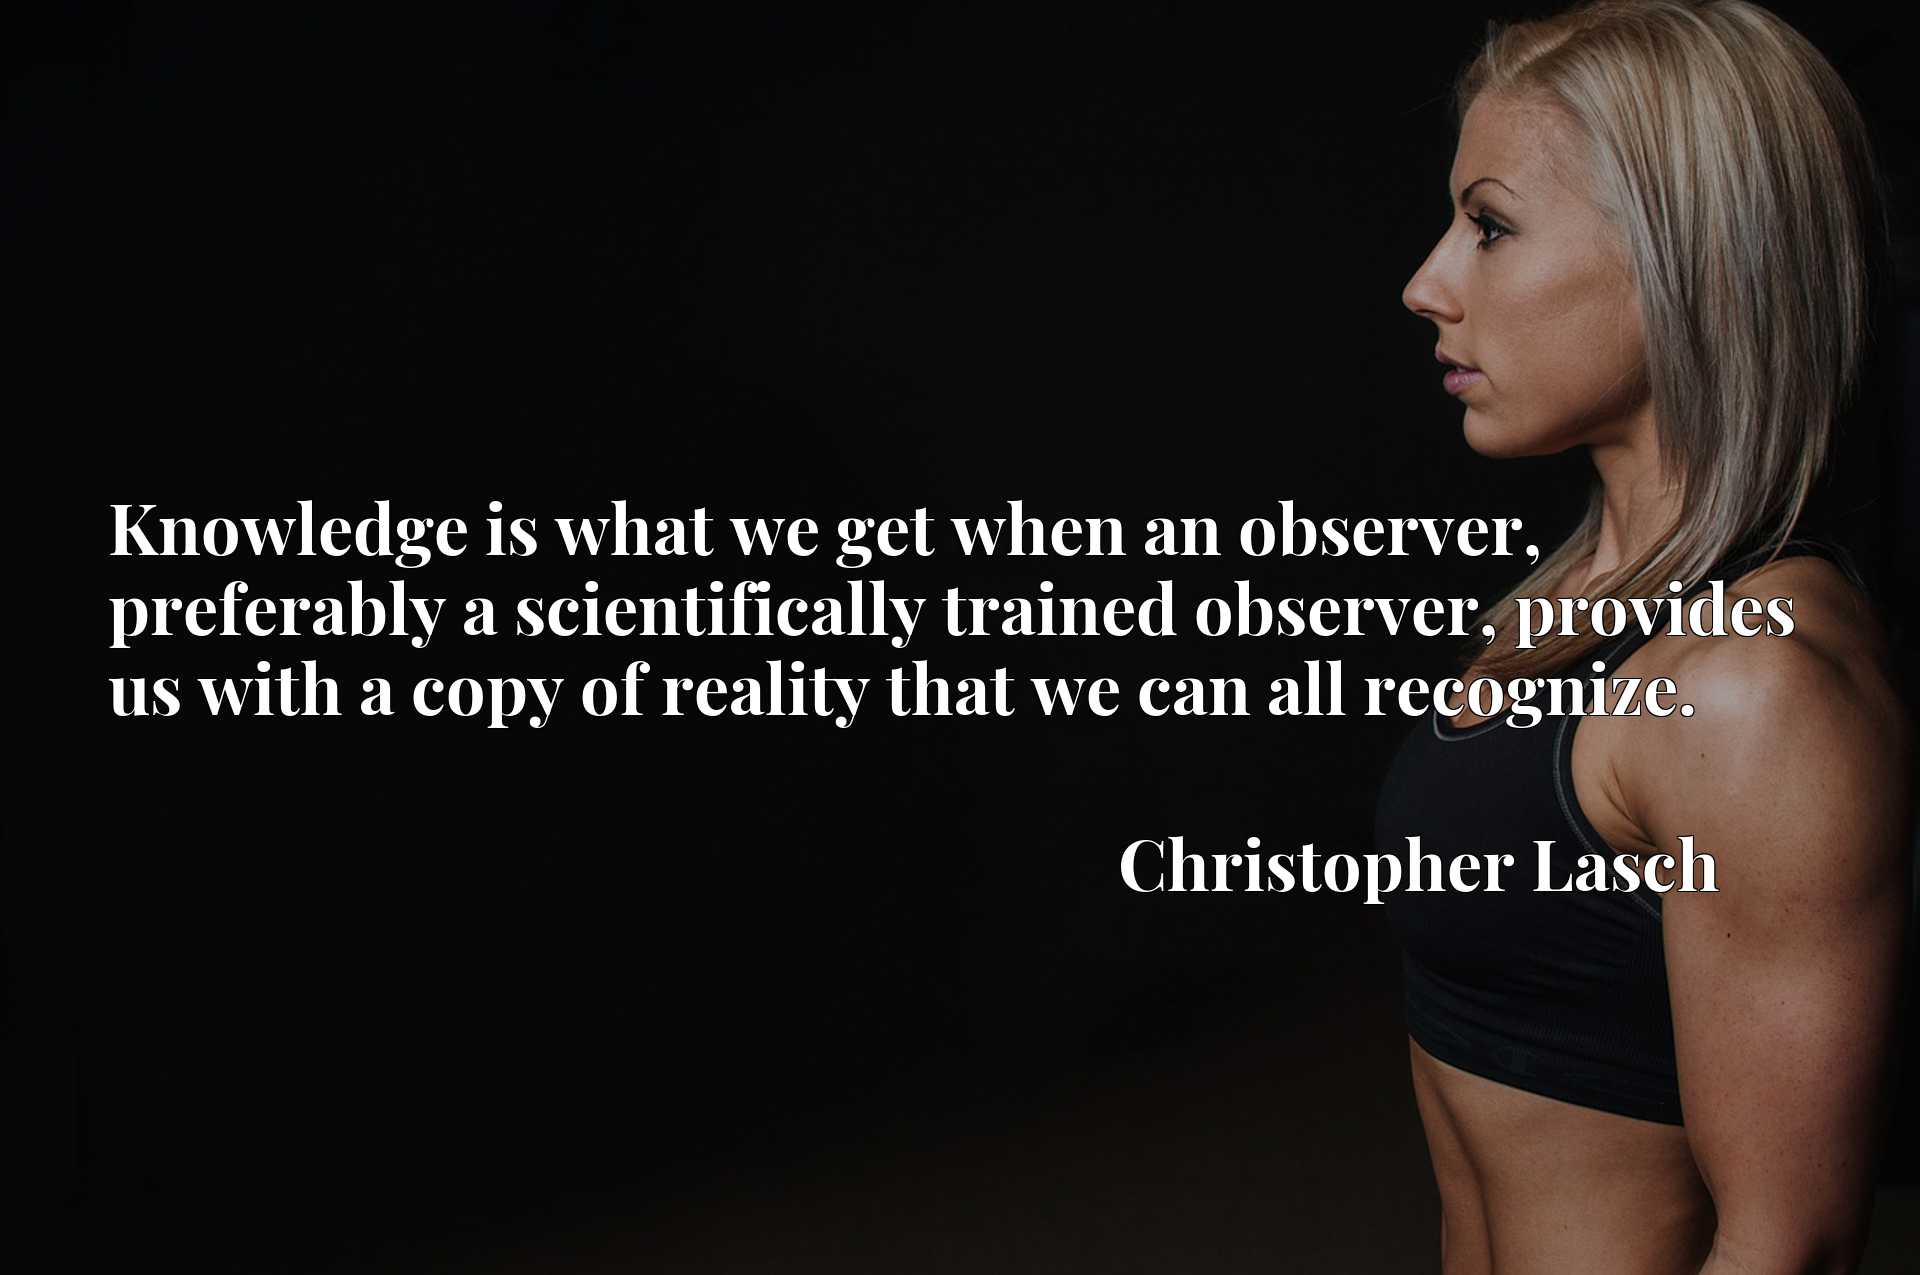 Knowledge is what we get when an observer, preferably a scientifically trained observer, provides us with a copy of reality that we can all recognize.